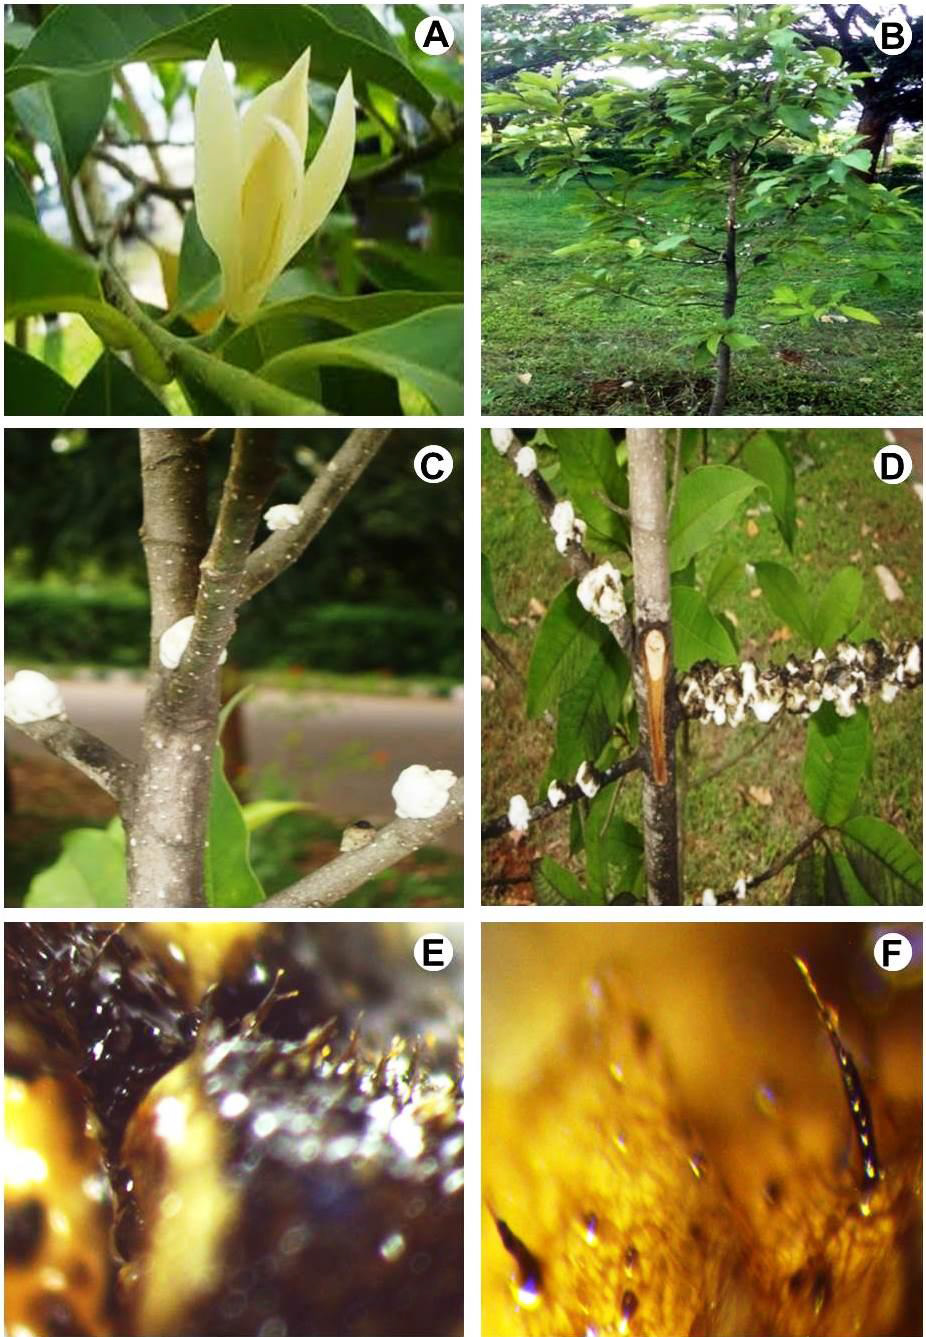 Stem gall of Michelia champaca L. (Magnoliaceae) induced by Podothrips sp.